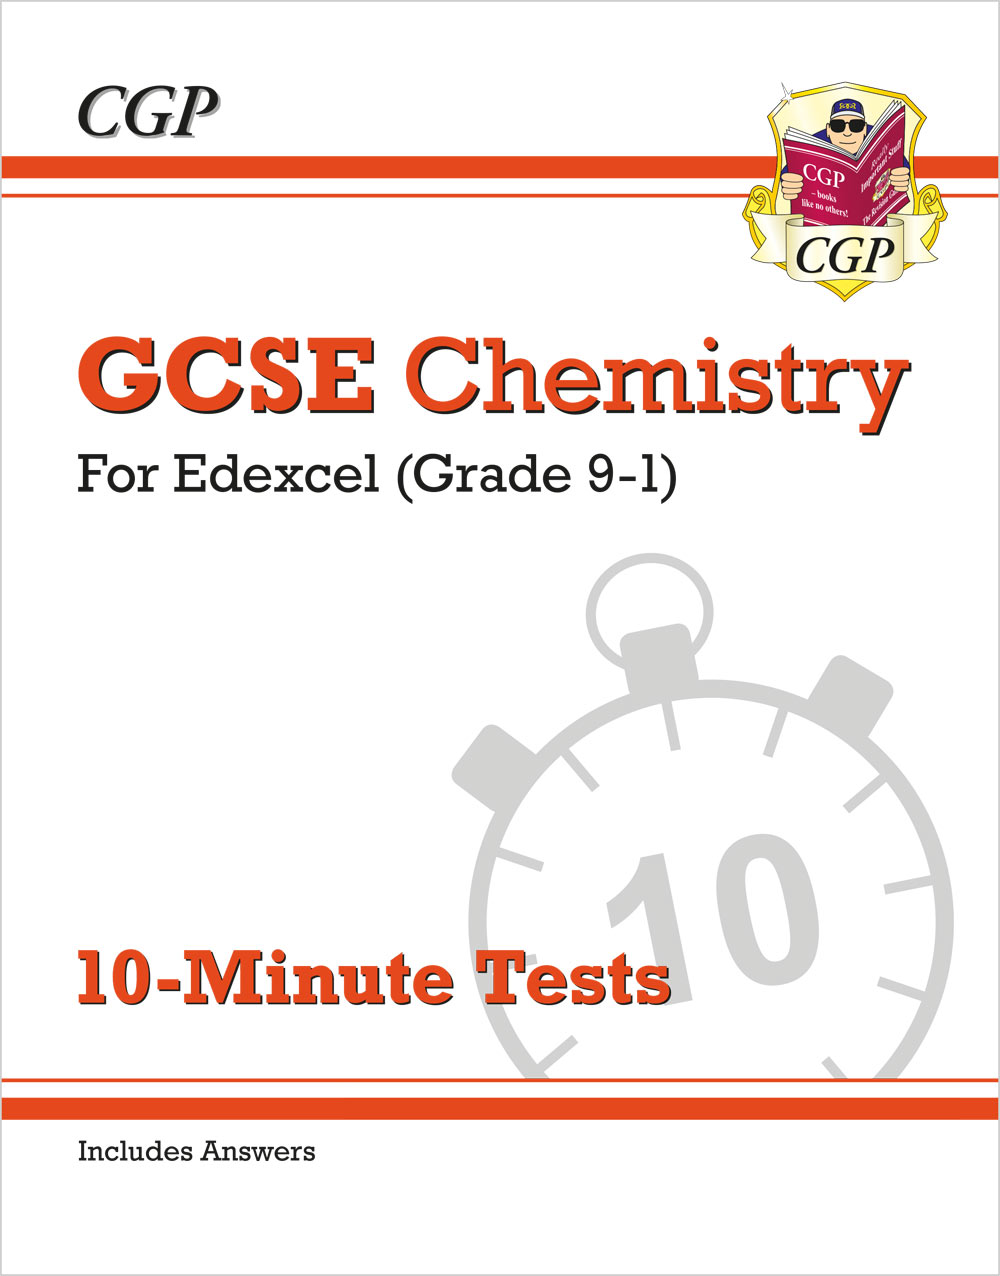 CEXP41 - Grade 9-1 GCSE Chemistry: Edexcel 10-Minute Tests (with answers)